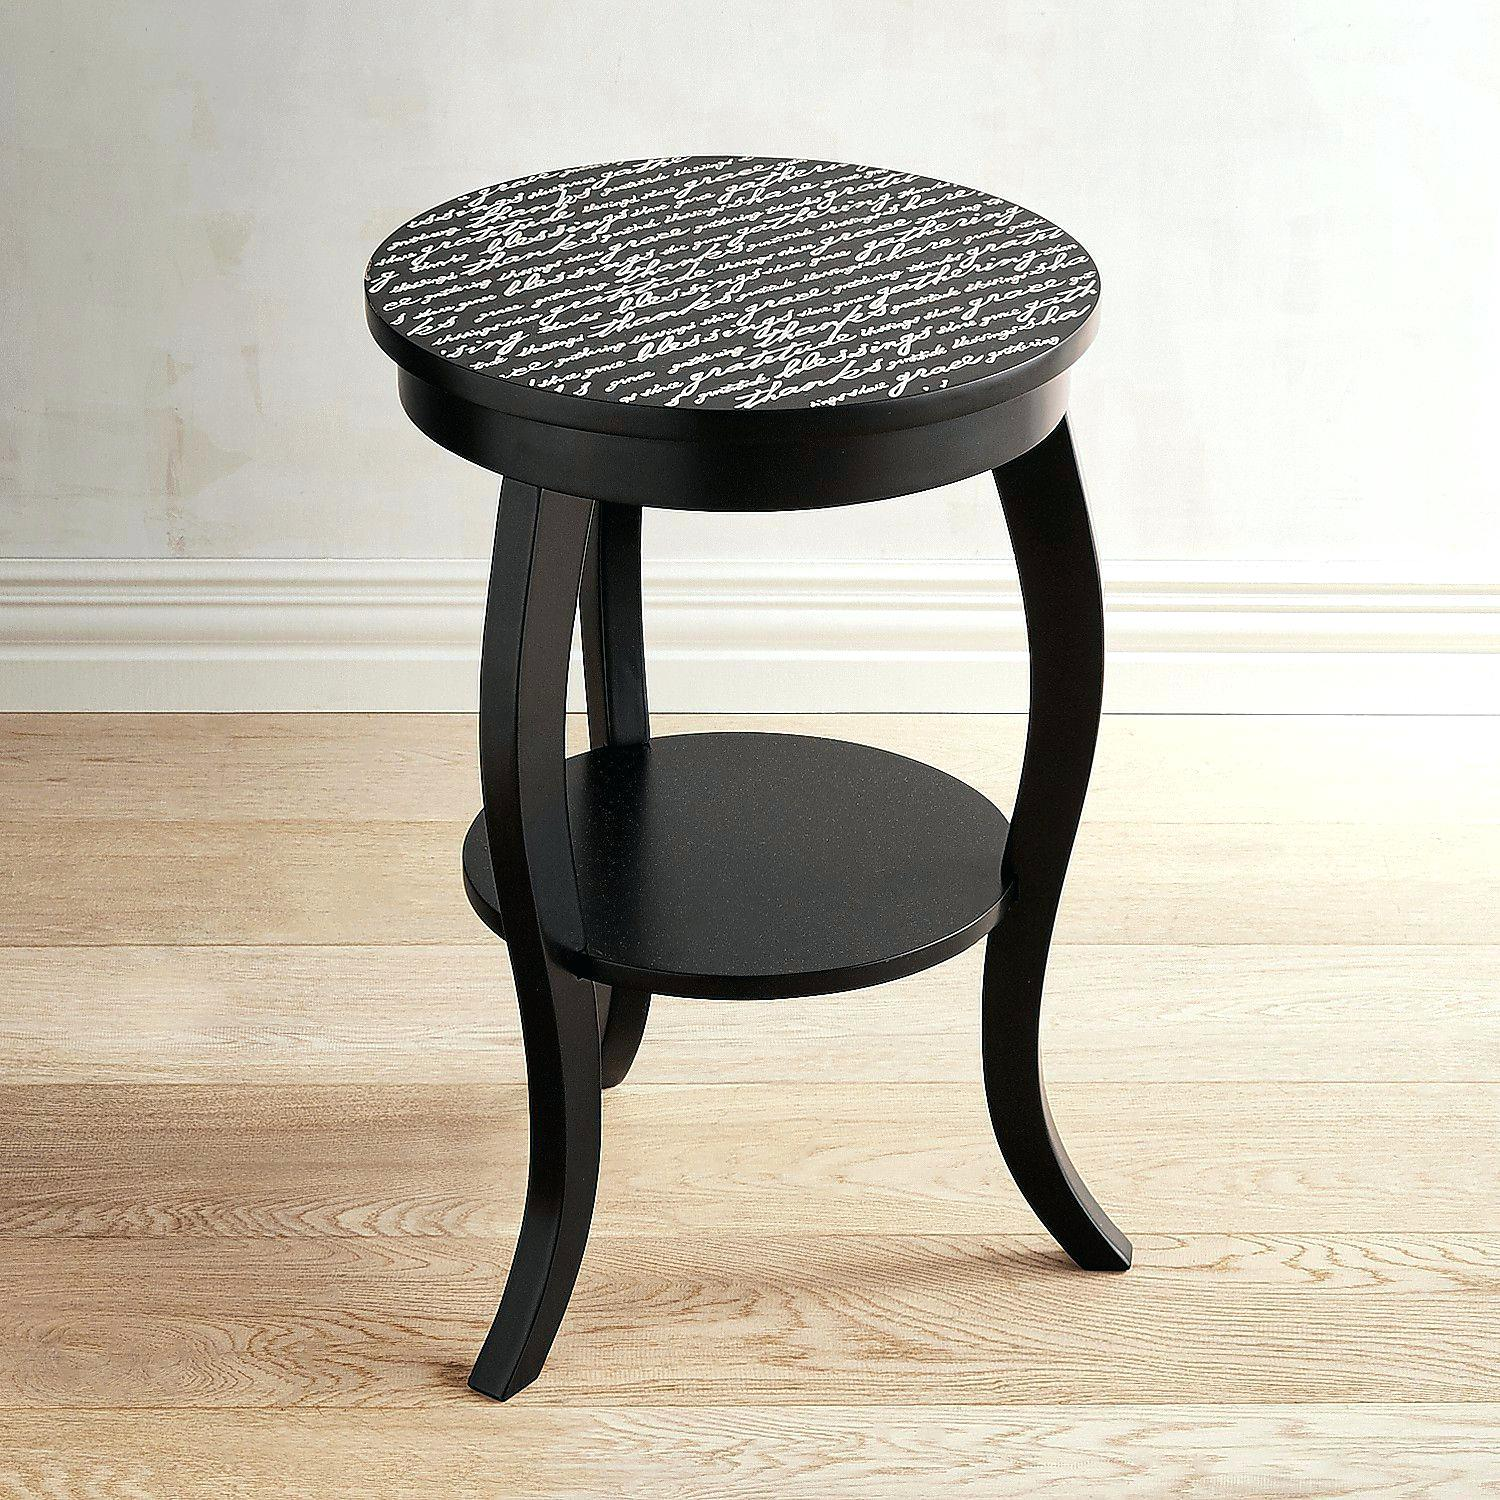 pier one accent tables coffee table glass luxury furniture mosaic save this item mirrored little ikea slim folding patio side outside cover red lamps sydney small white cube